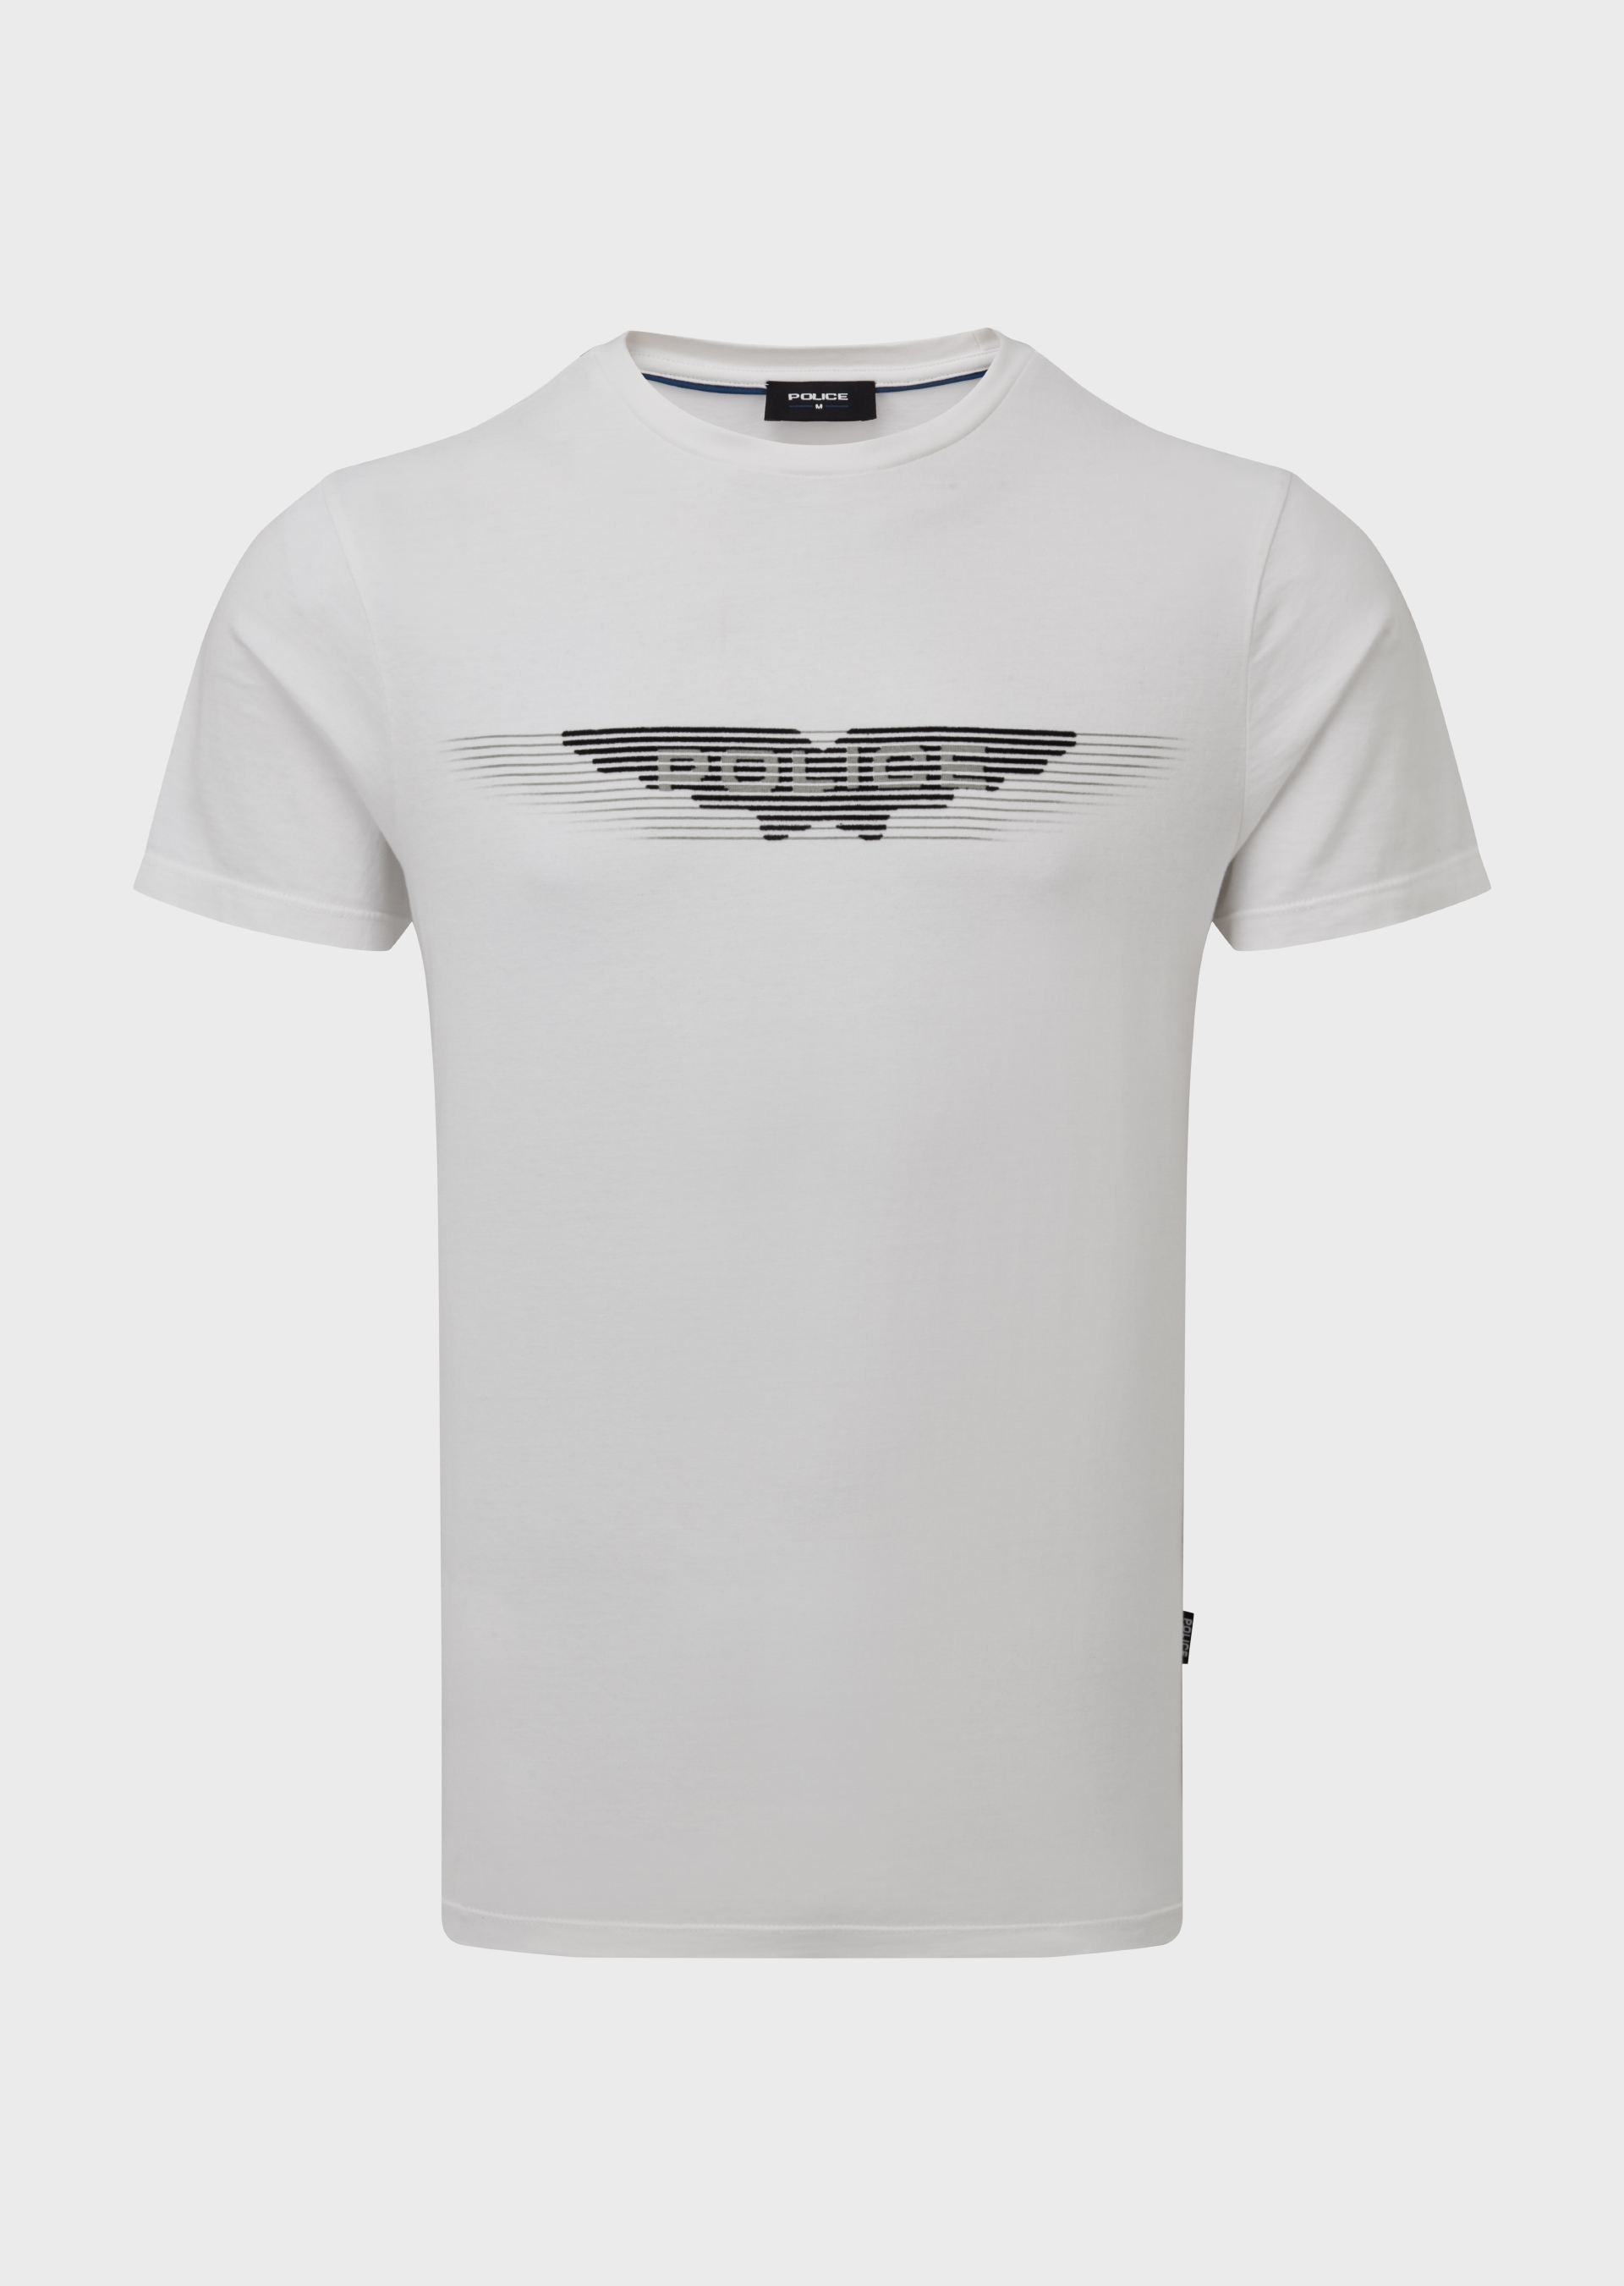 Sector T Shirts second_image